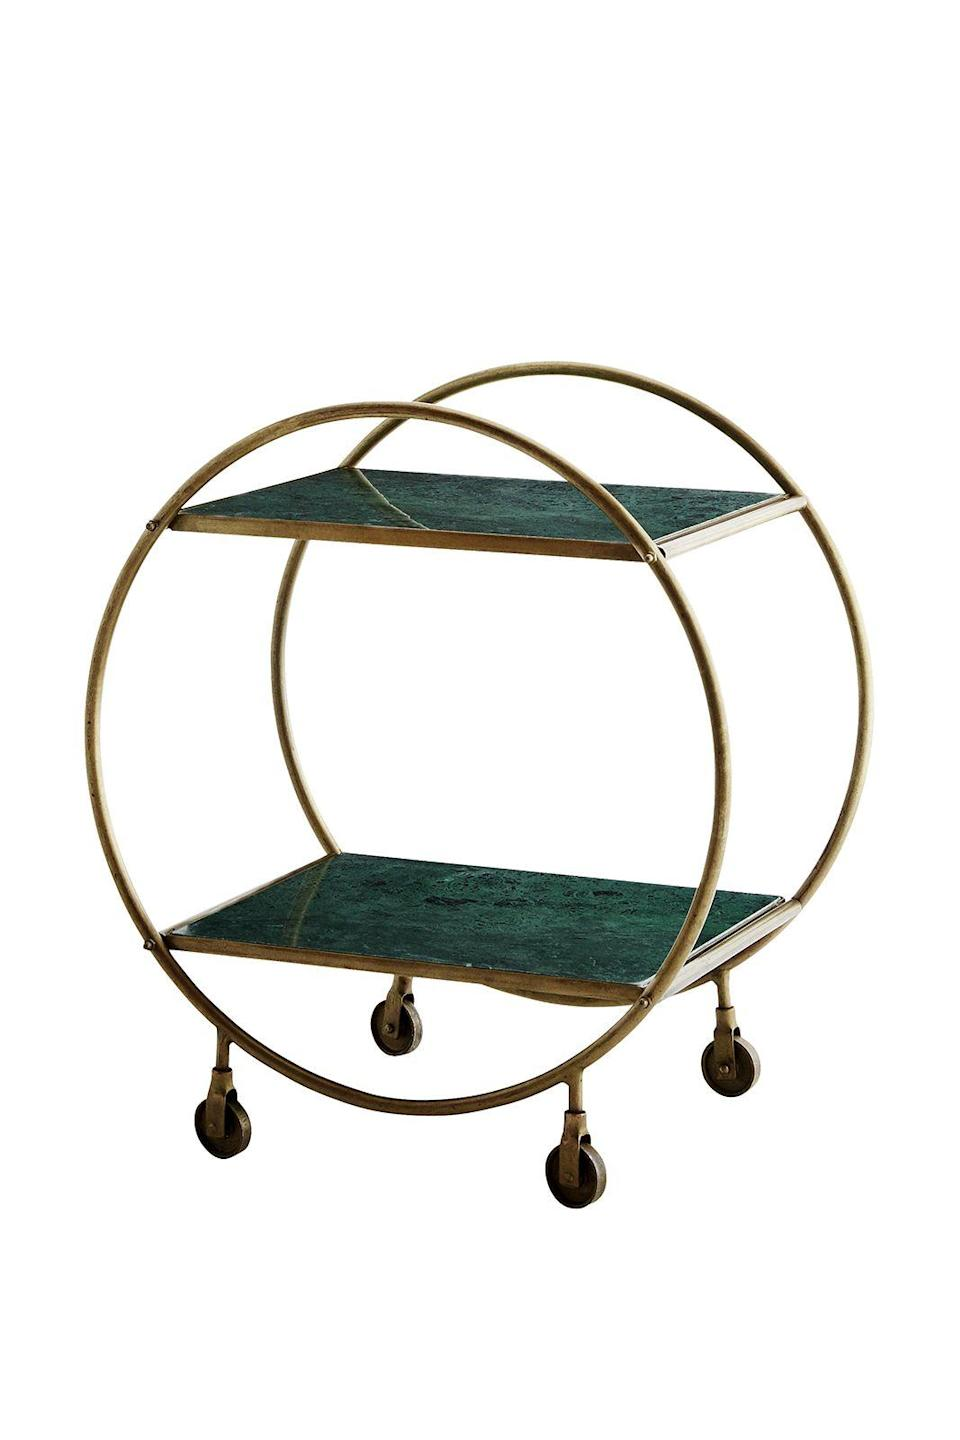 """<p><strong>All that jazz</strong></p><p>A cocktail of trends all in one, this green marble and brass round drinks trolley will transform your home bar into something out of an F. Scott Fitzgerald novel. Highball, anyone?</p><p>£340, <a href=""""http://www.rockettstgeorge.co.uk/round-brass-and-marble-drinks-trolley-in-green-44633-p.html"""" rel=""""nofollow noopener"""" target=""""_blank"""" data-ylk=""""slk:rocketstgeorge.co.uk"""" class=""""link rapid-noclick-resp"""">rocketstgeorge.co.uk</a></p>"""